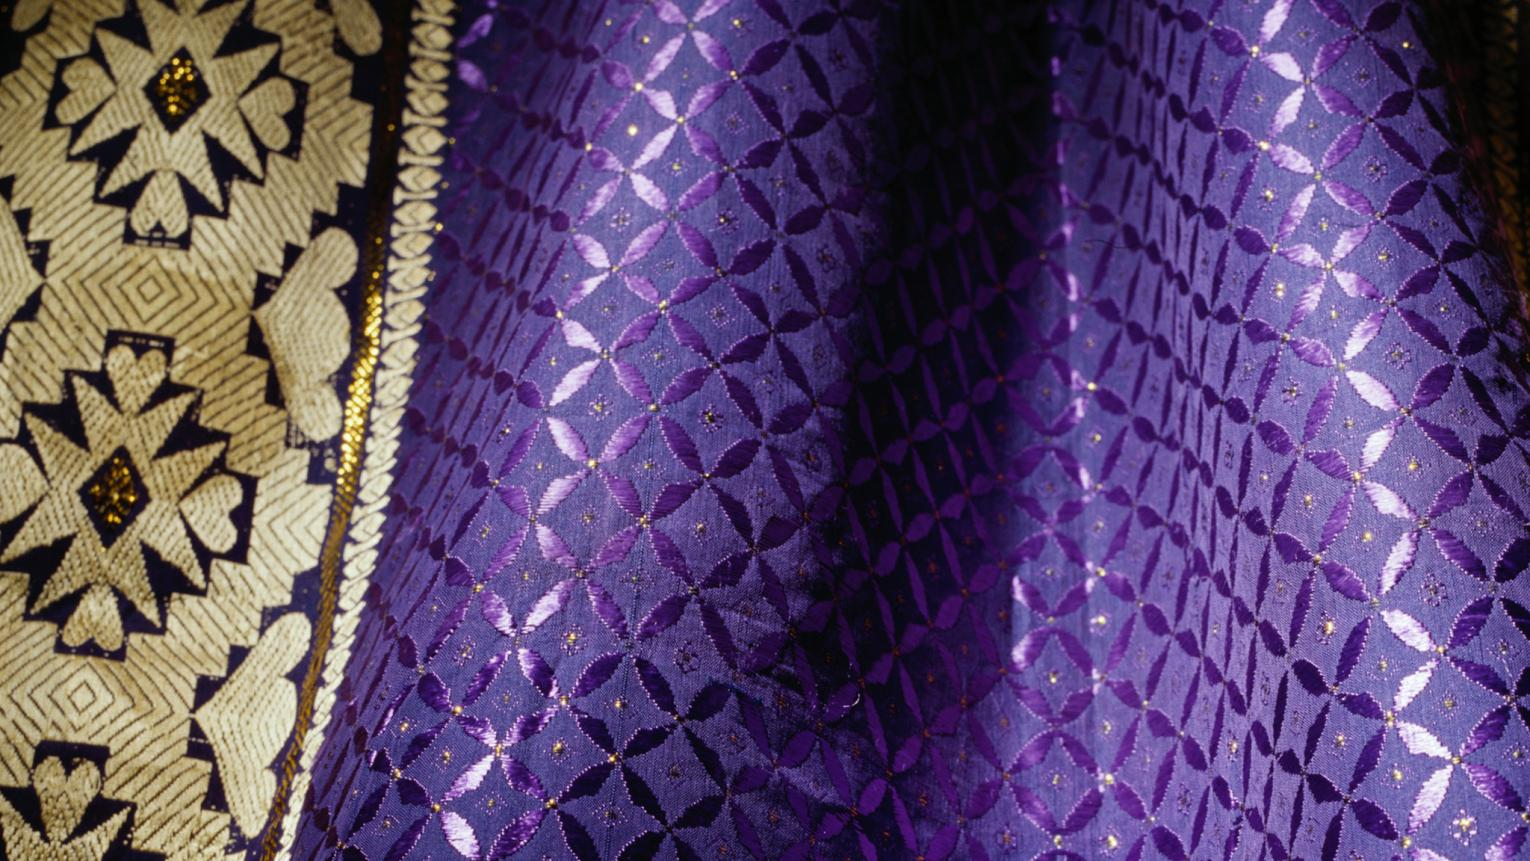 Decorate your home in shades of rich purple to feel like royalty.